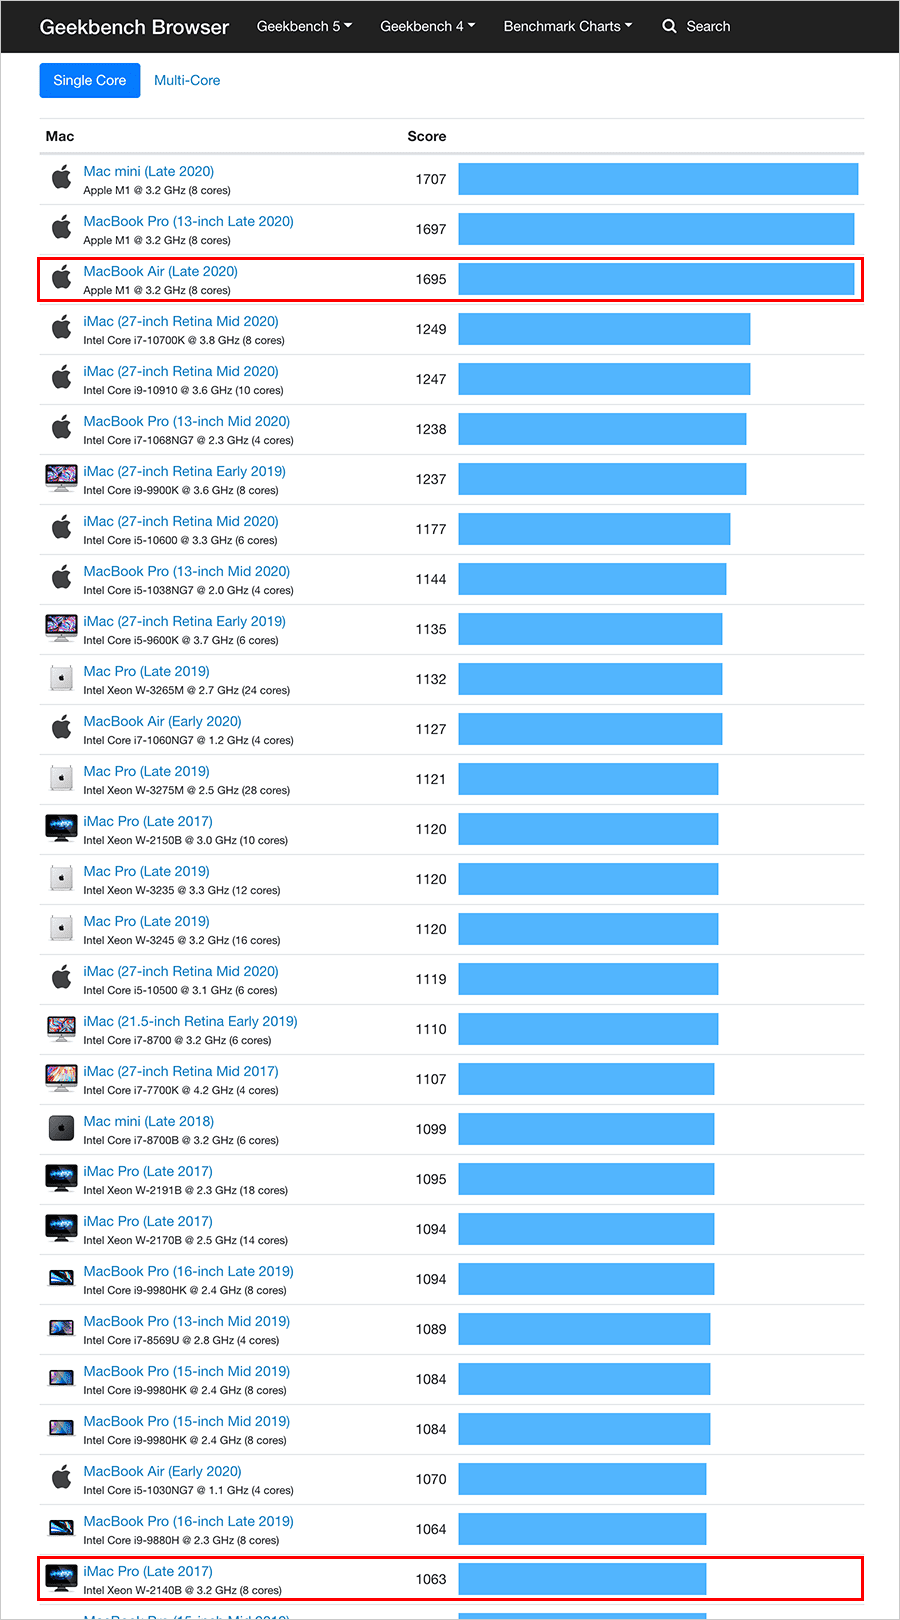 Mac Benchmarks Single Core